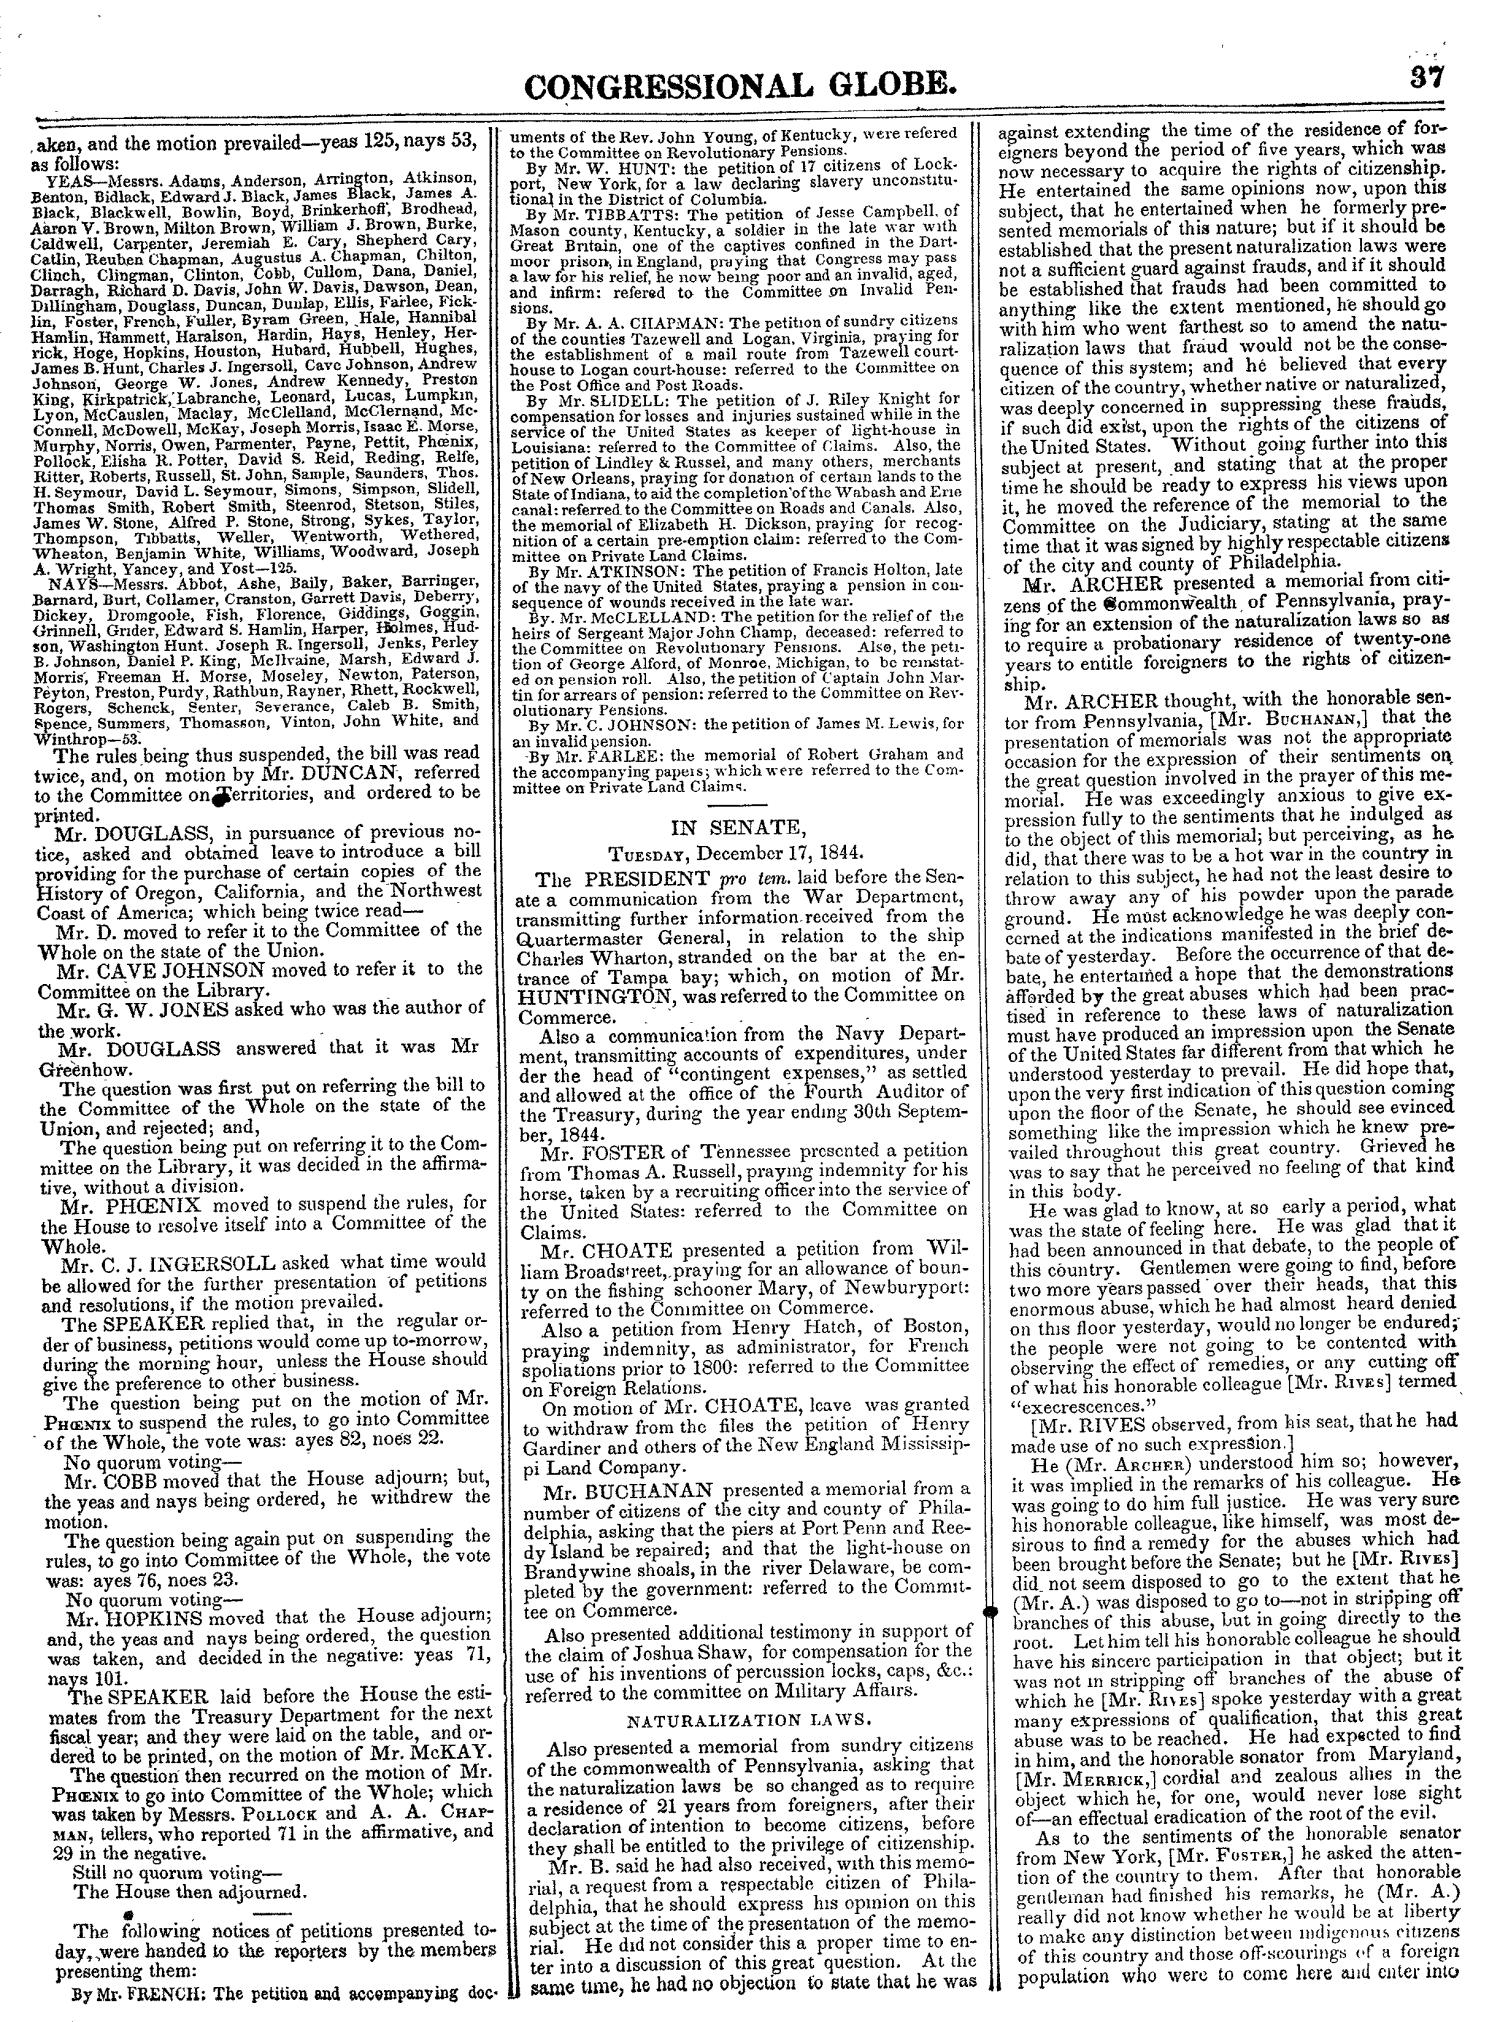 The Congressional Globe, Volume 14: Twenty-Eighth Congress, Second Session                                                                                                      37